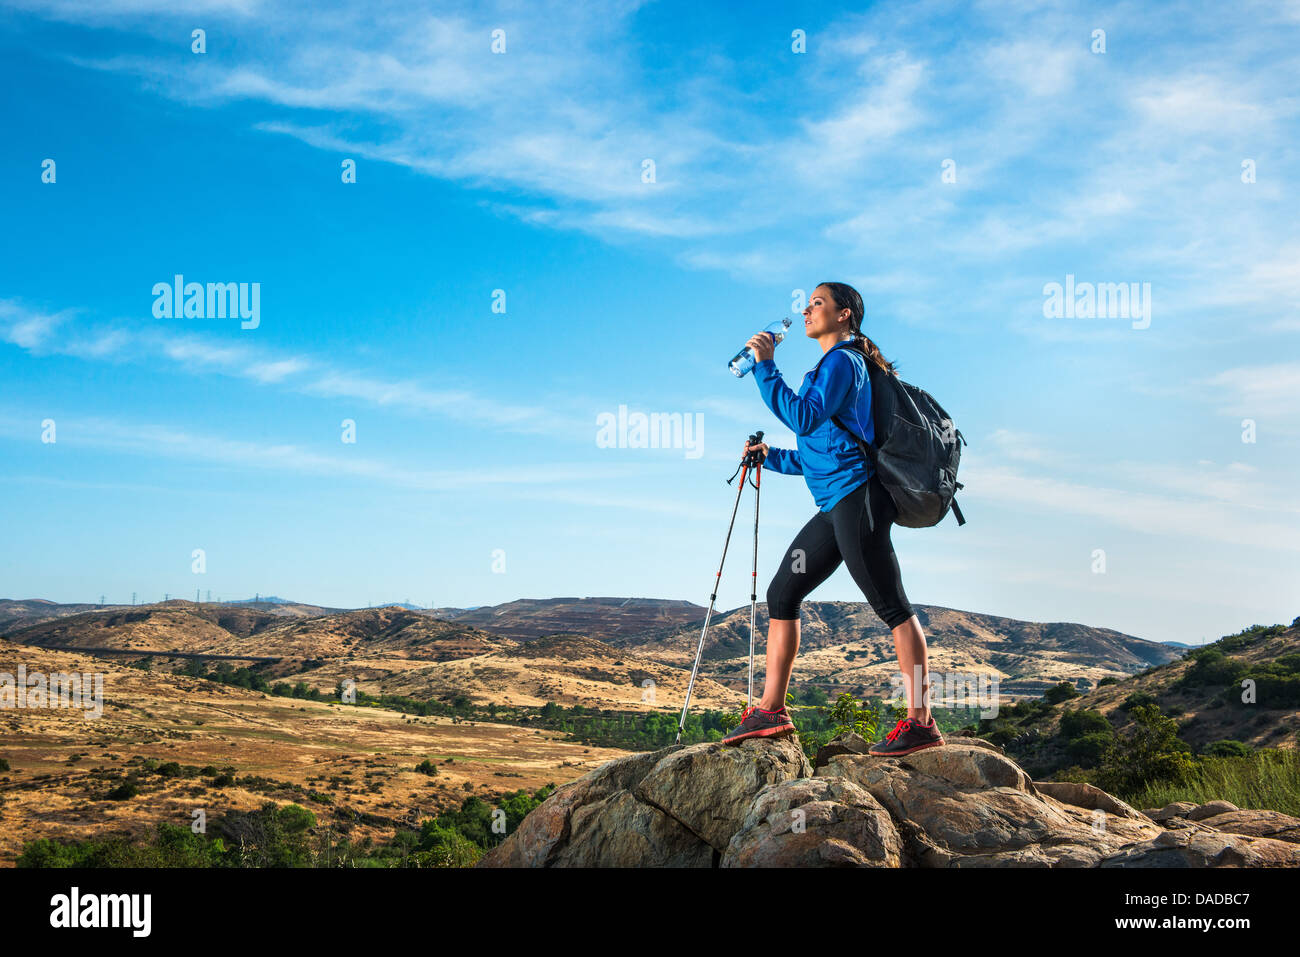 Female hiker on rock, drinking water - Stock Image